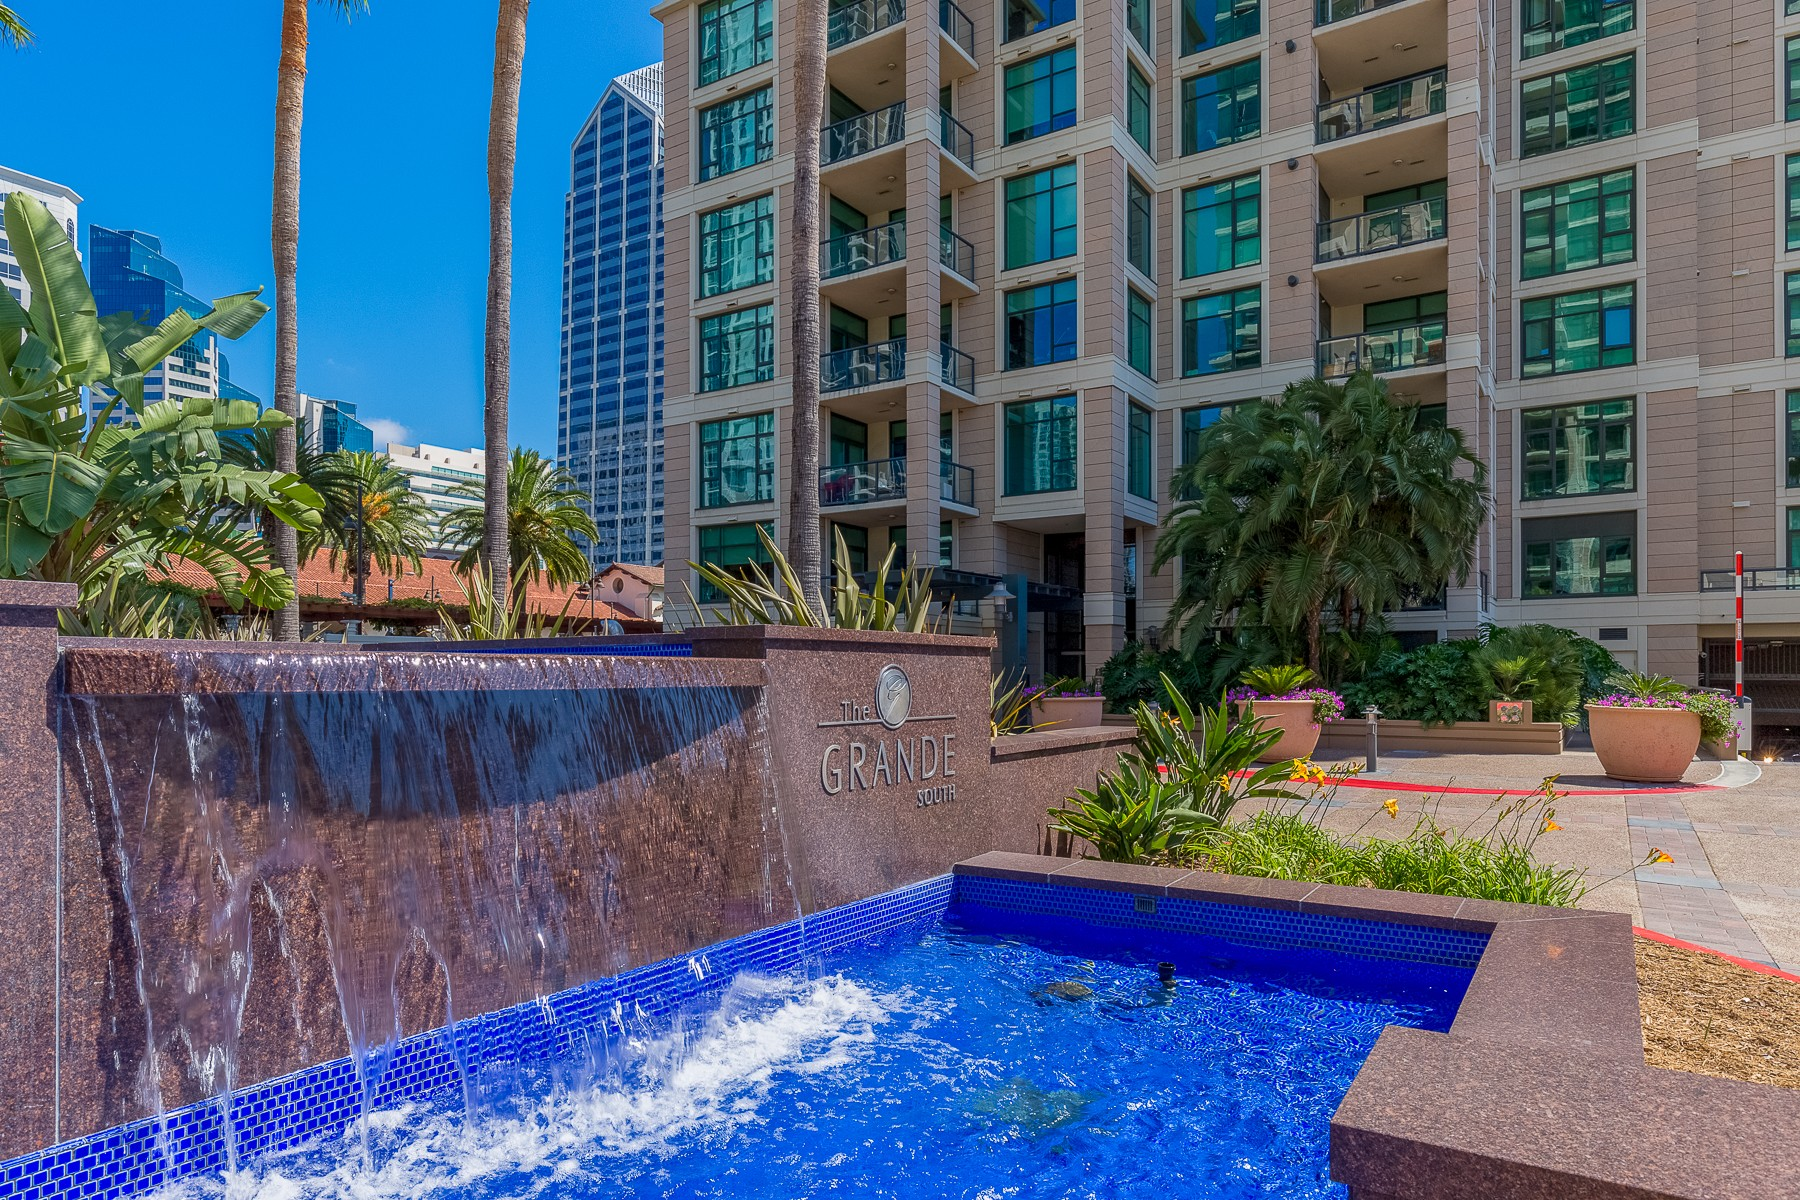 Condominium for Sale at The Grande South 1199 Pacific Highway, 2803 San Diego, California, 92101 United States